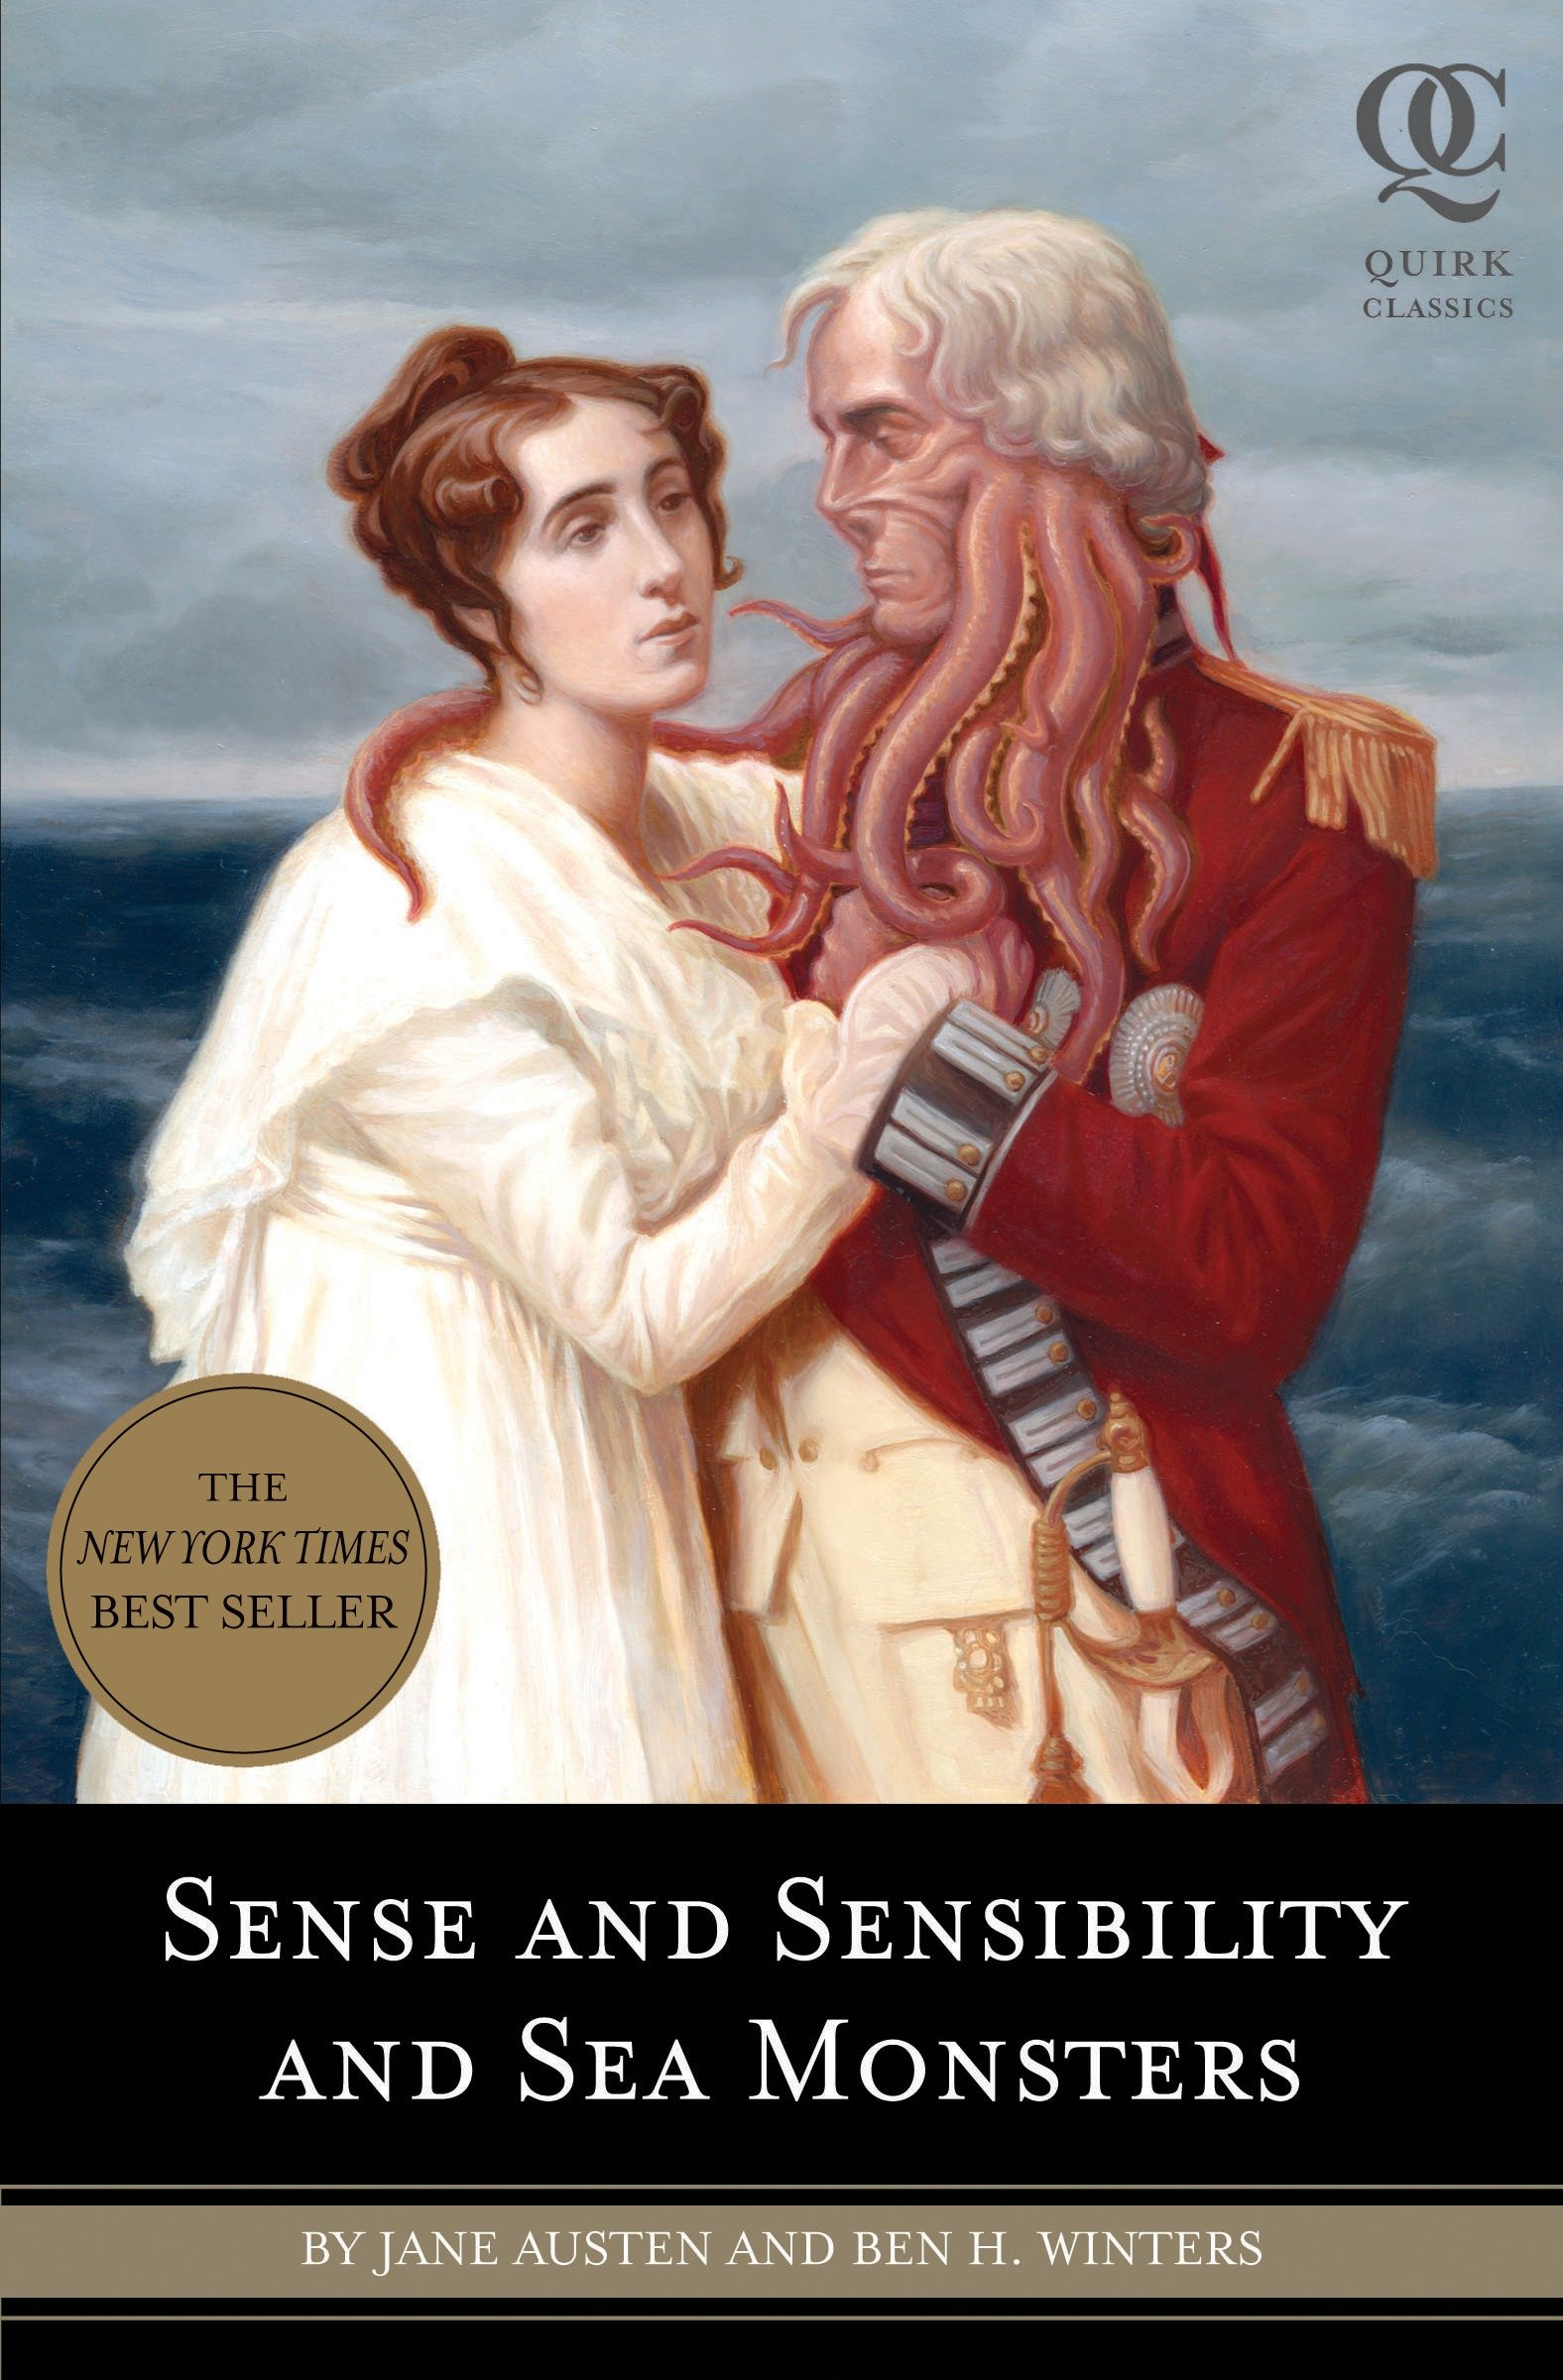 Sense and sensibility and sea monsters cover image